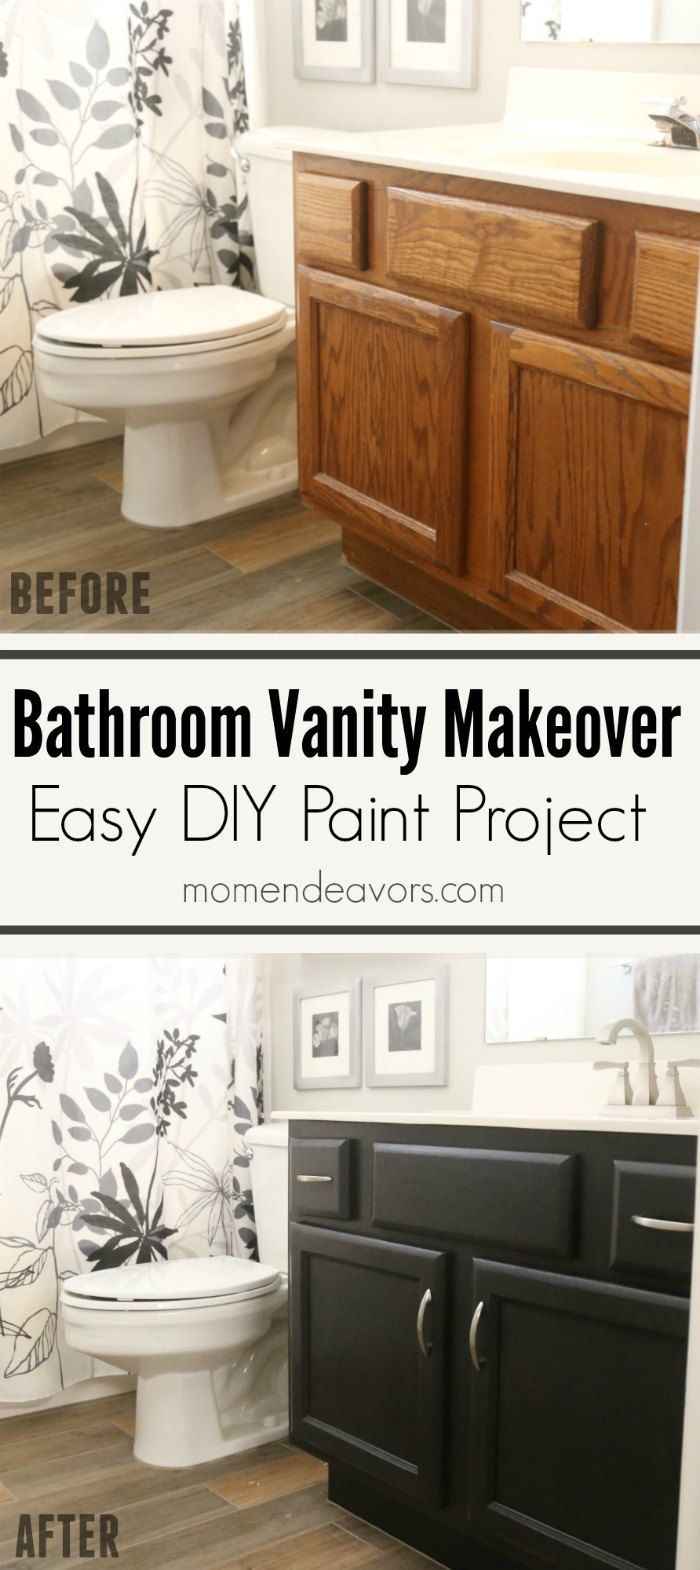 Bathroom Vanity Makeover – Easy DIY Home Paint Project | Painted ...